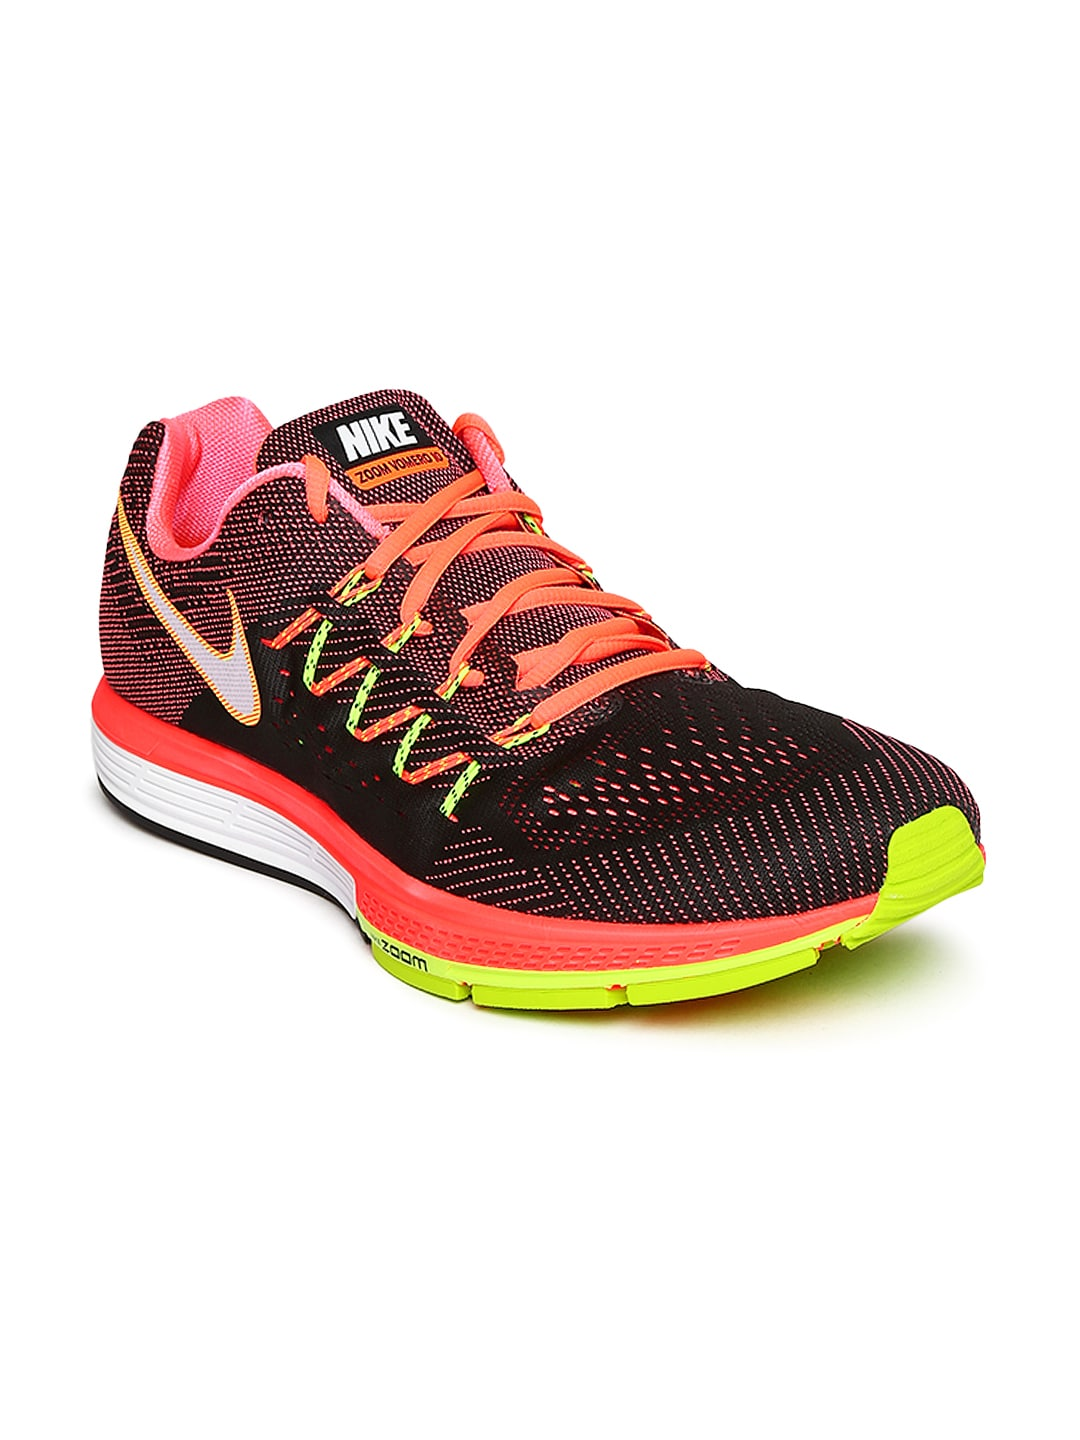 ab6b7063874da Nike 717440-800 Men Black And Fluorescent Pink Air Zoom Vomero 10 Running  Shoes- Price in India